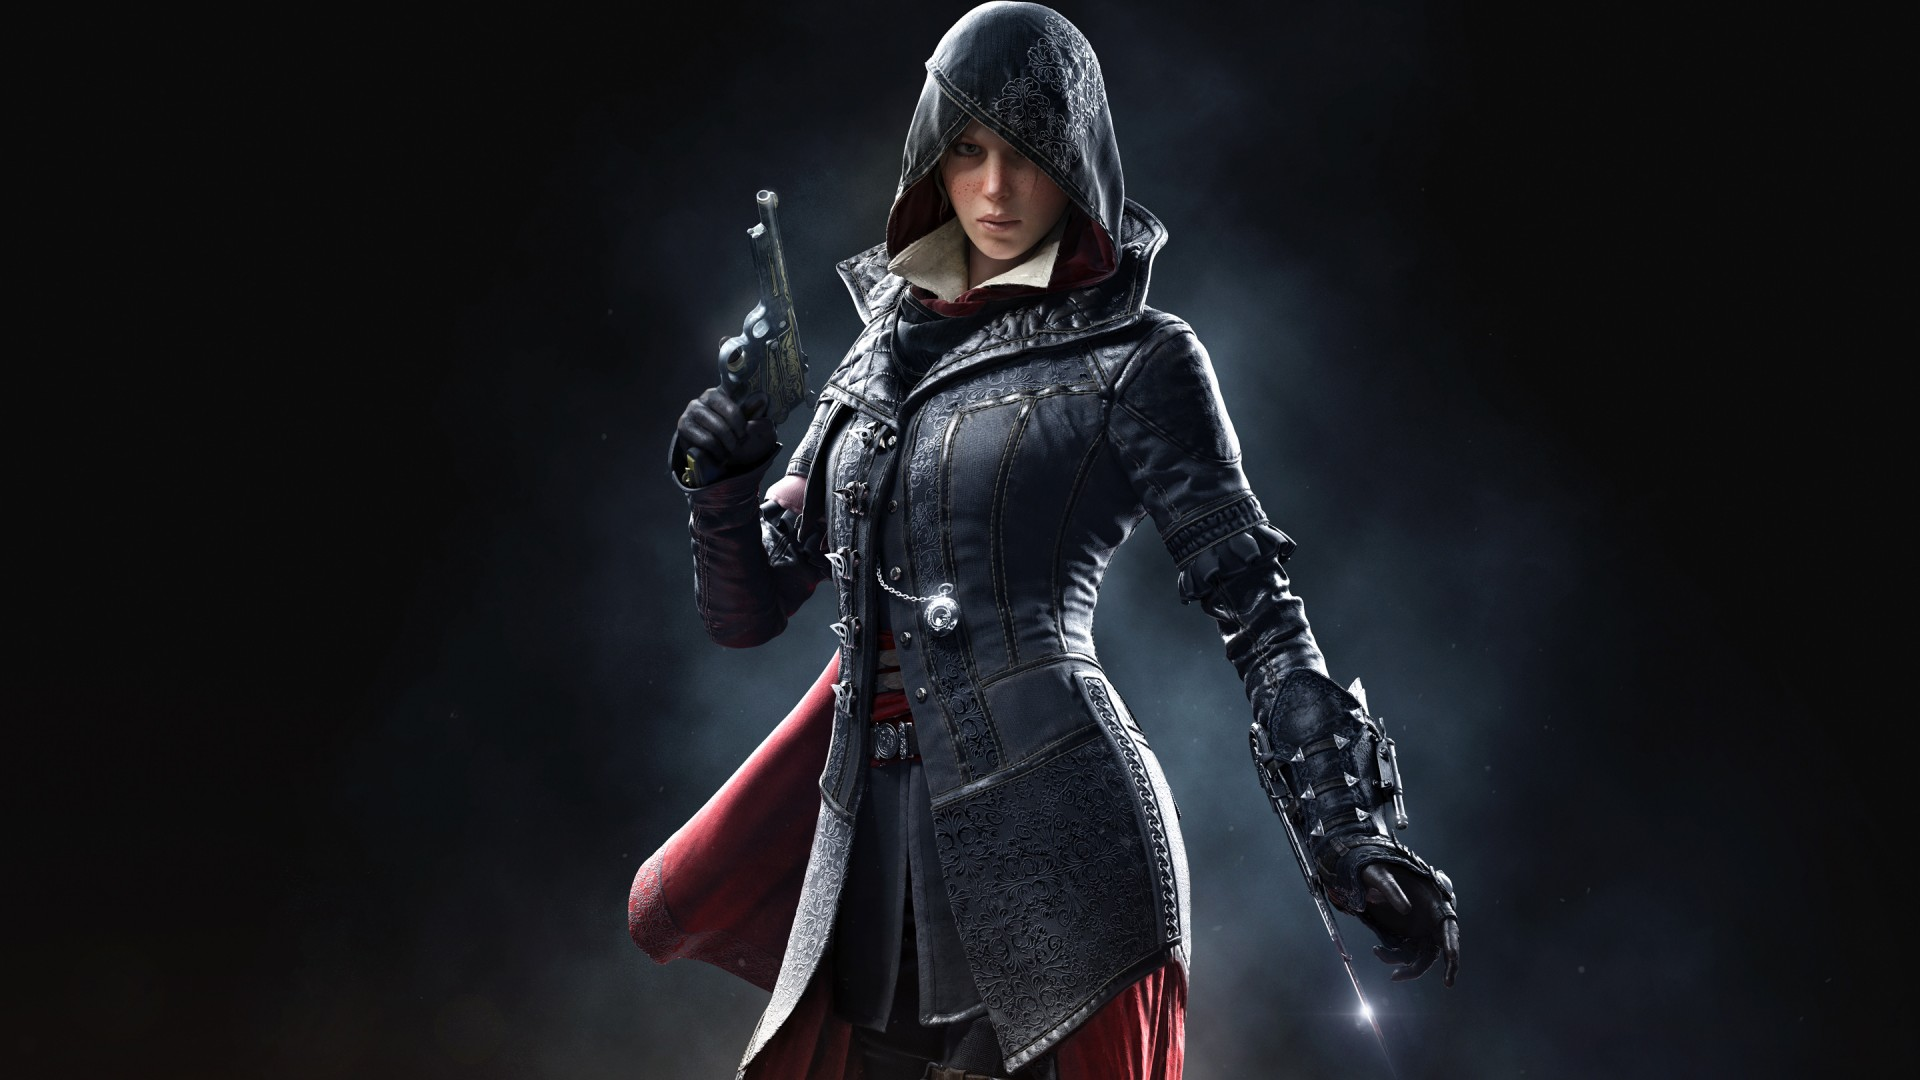 Influential Female Characters Evie Frye Real Women Of Gaming